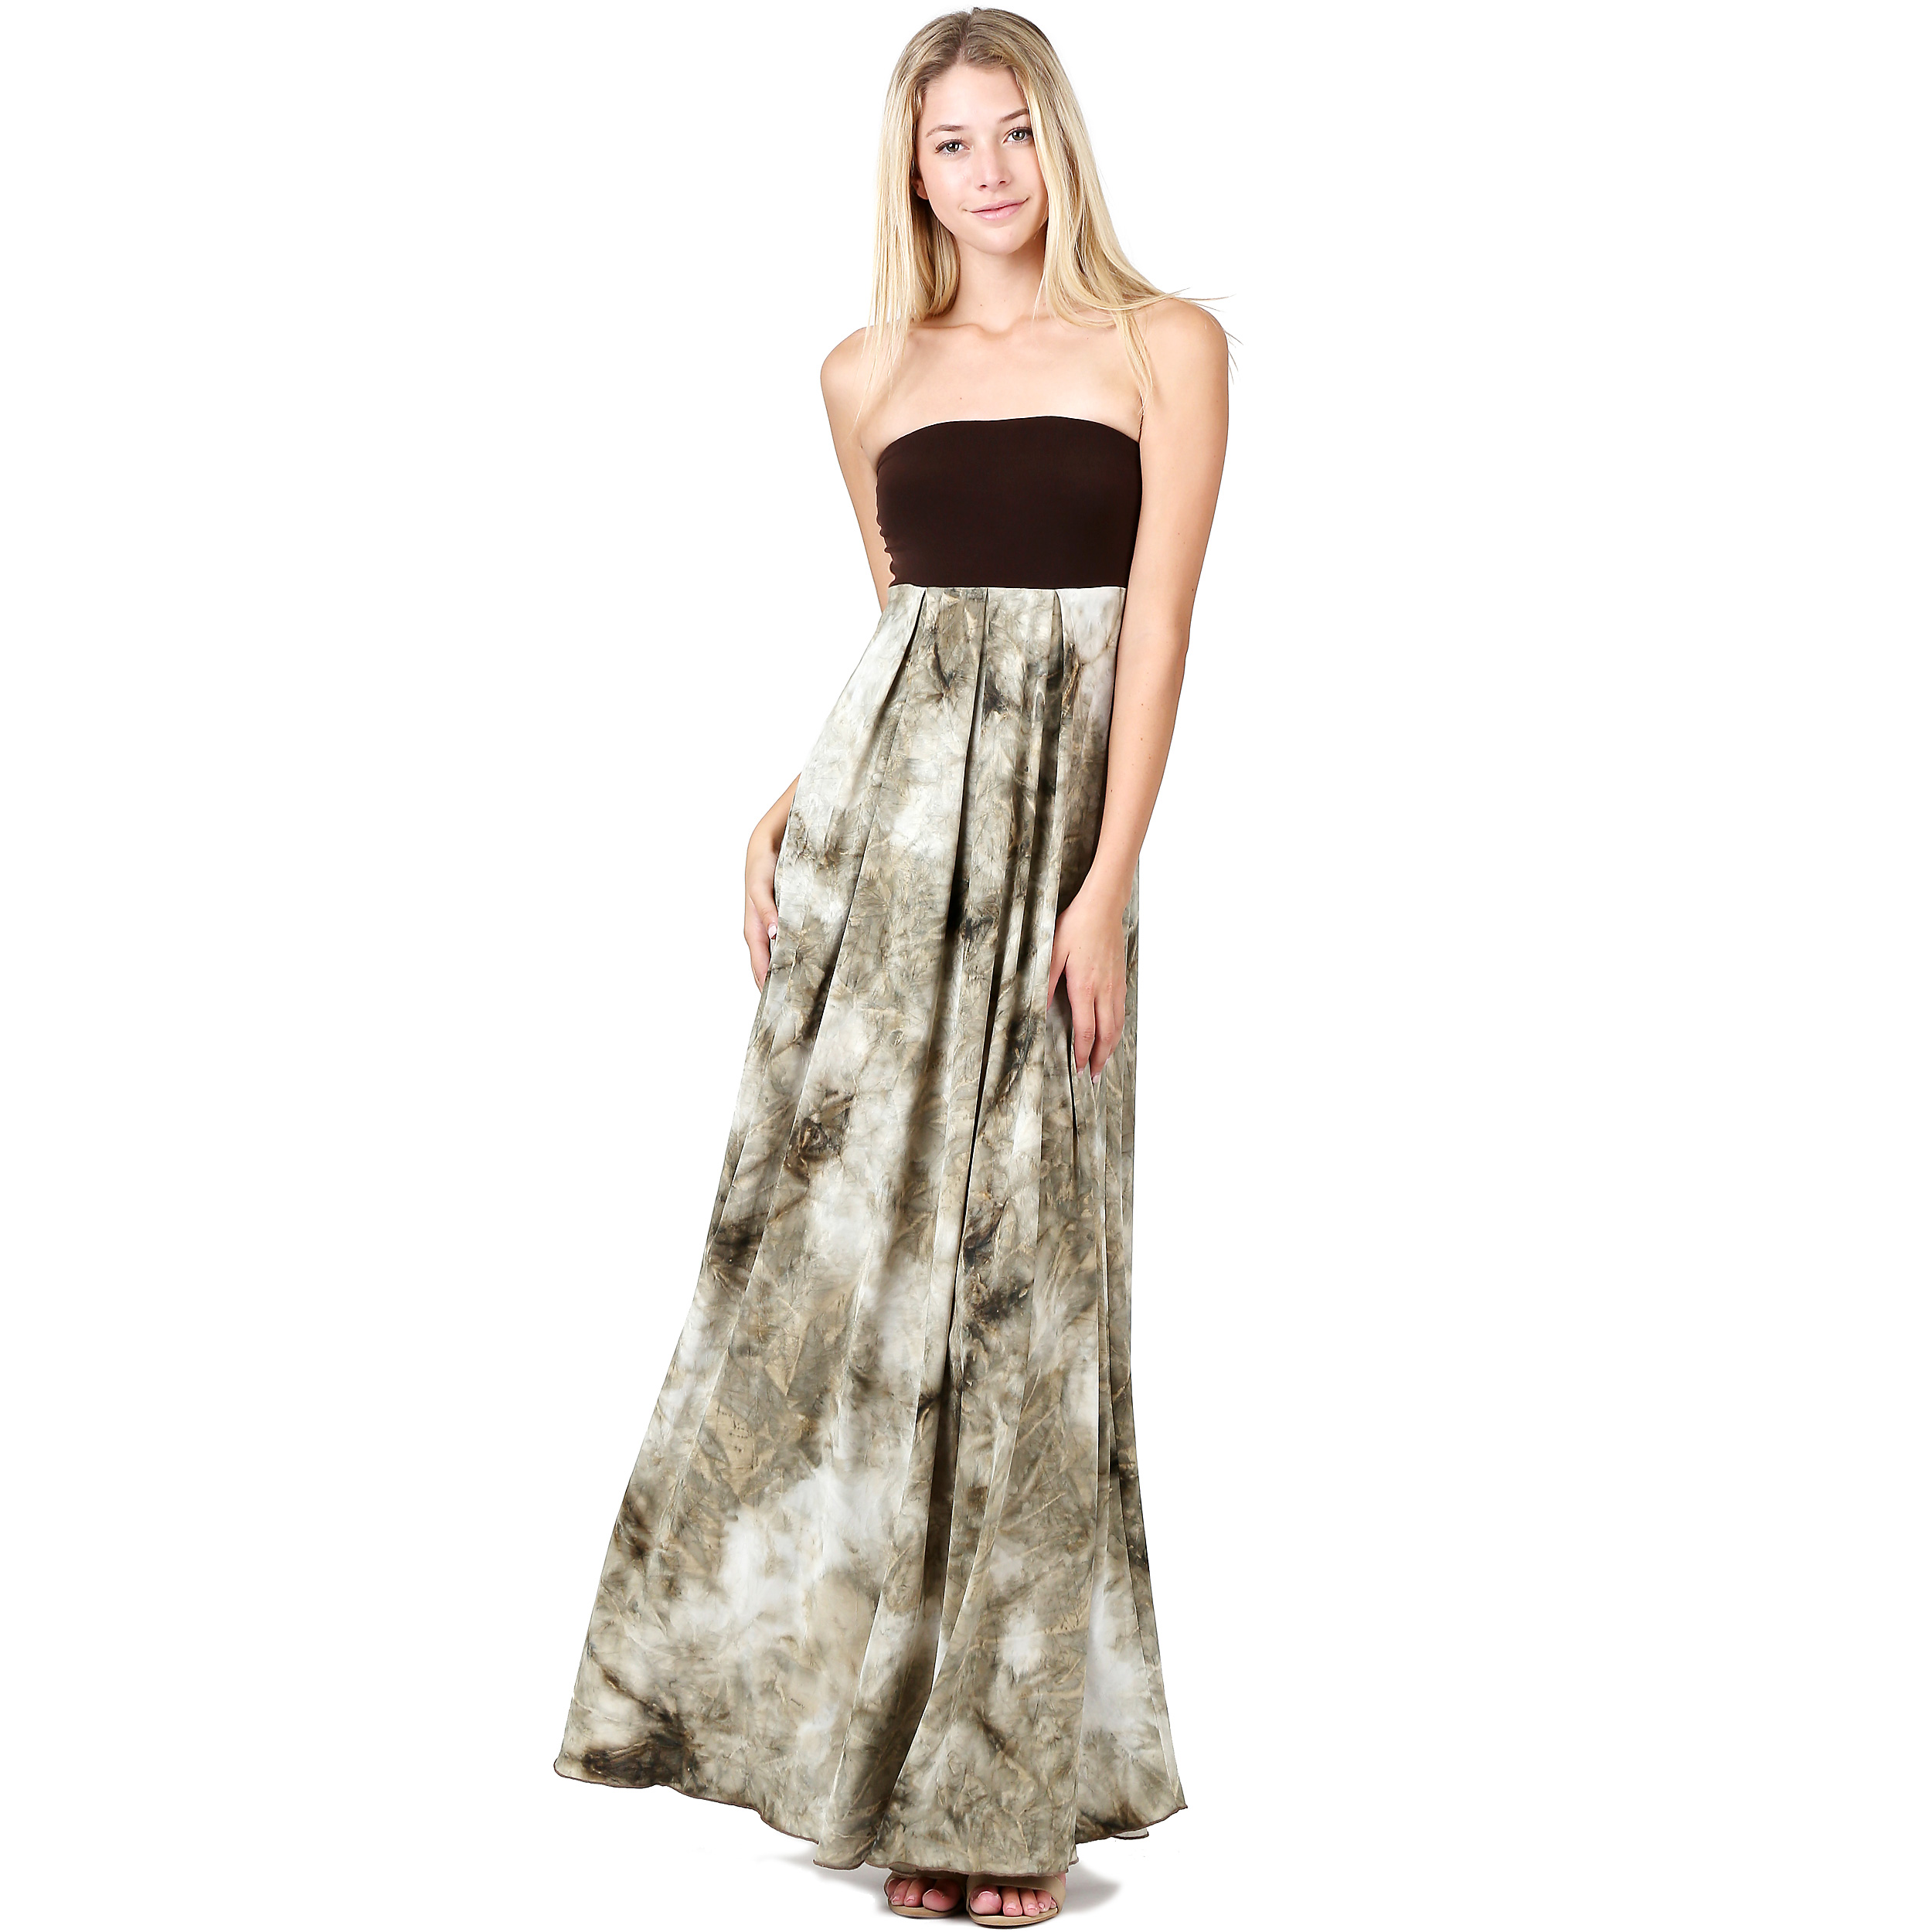 daeea6b3ee Evanese Women s Cocktail Strapless Tube Tie dye Print Maxi Long Dress is a  sassy addition to your closet. This long dress features contrast strapless  tube ...